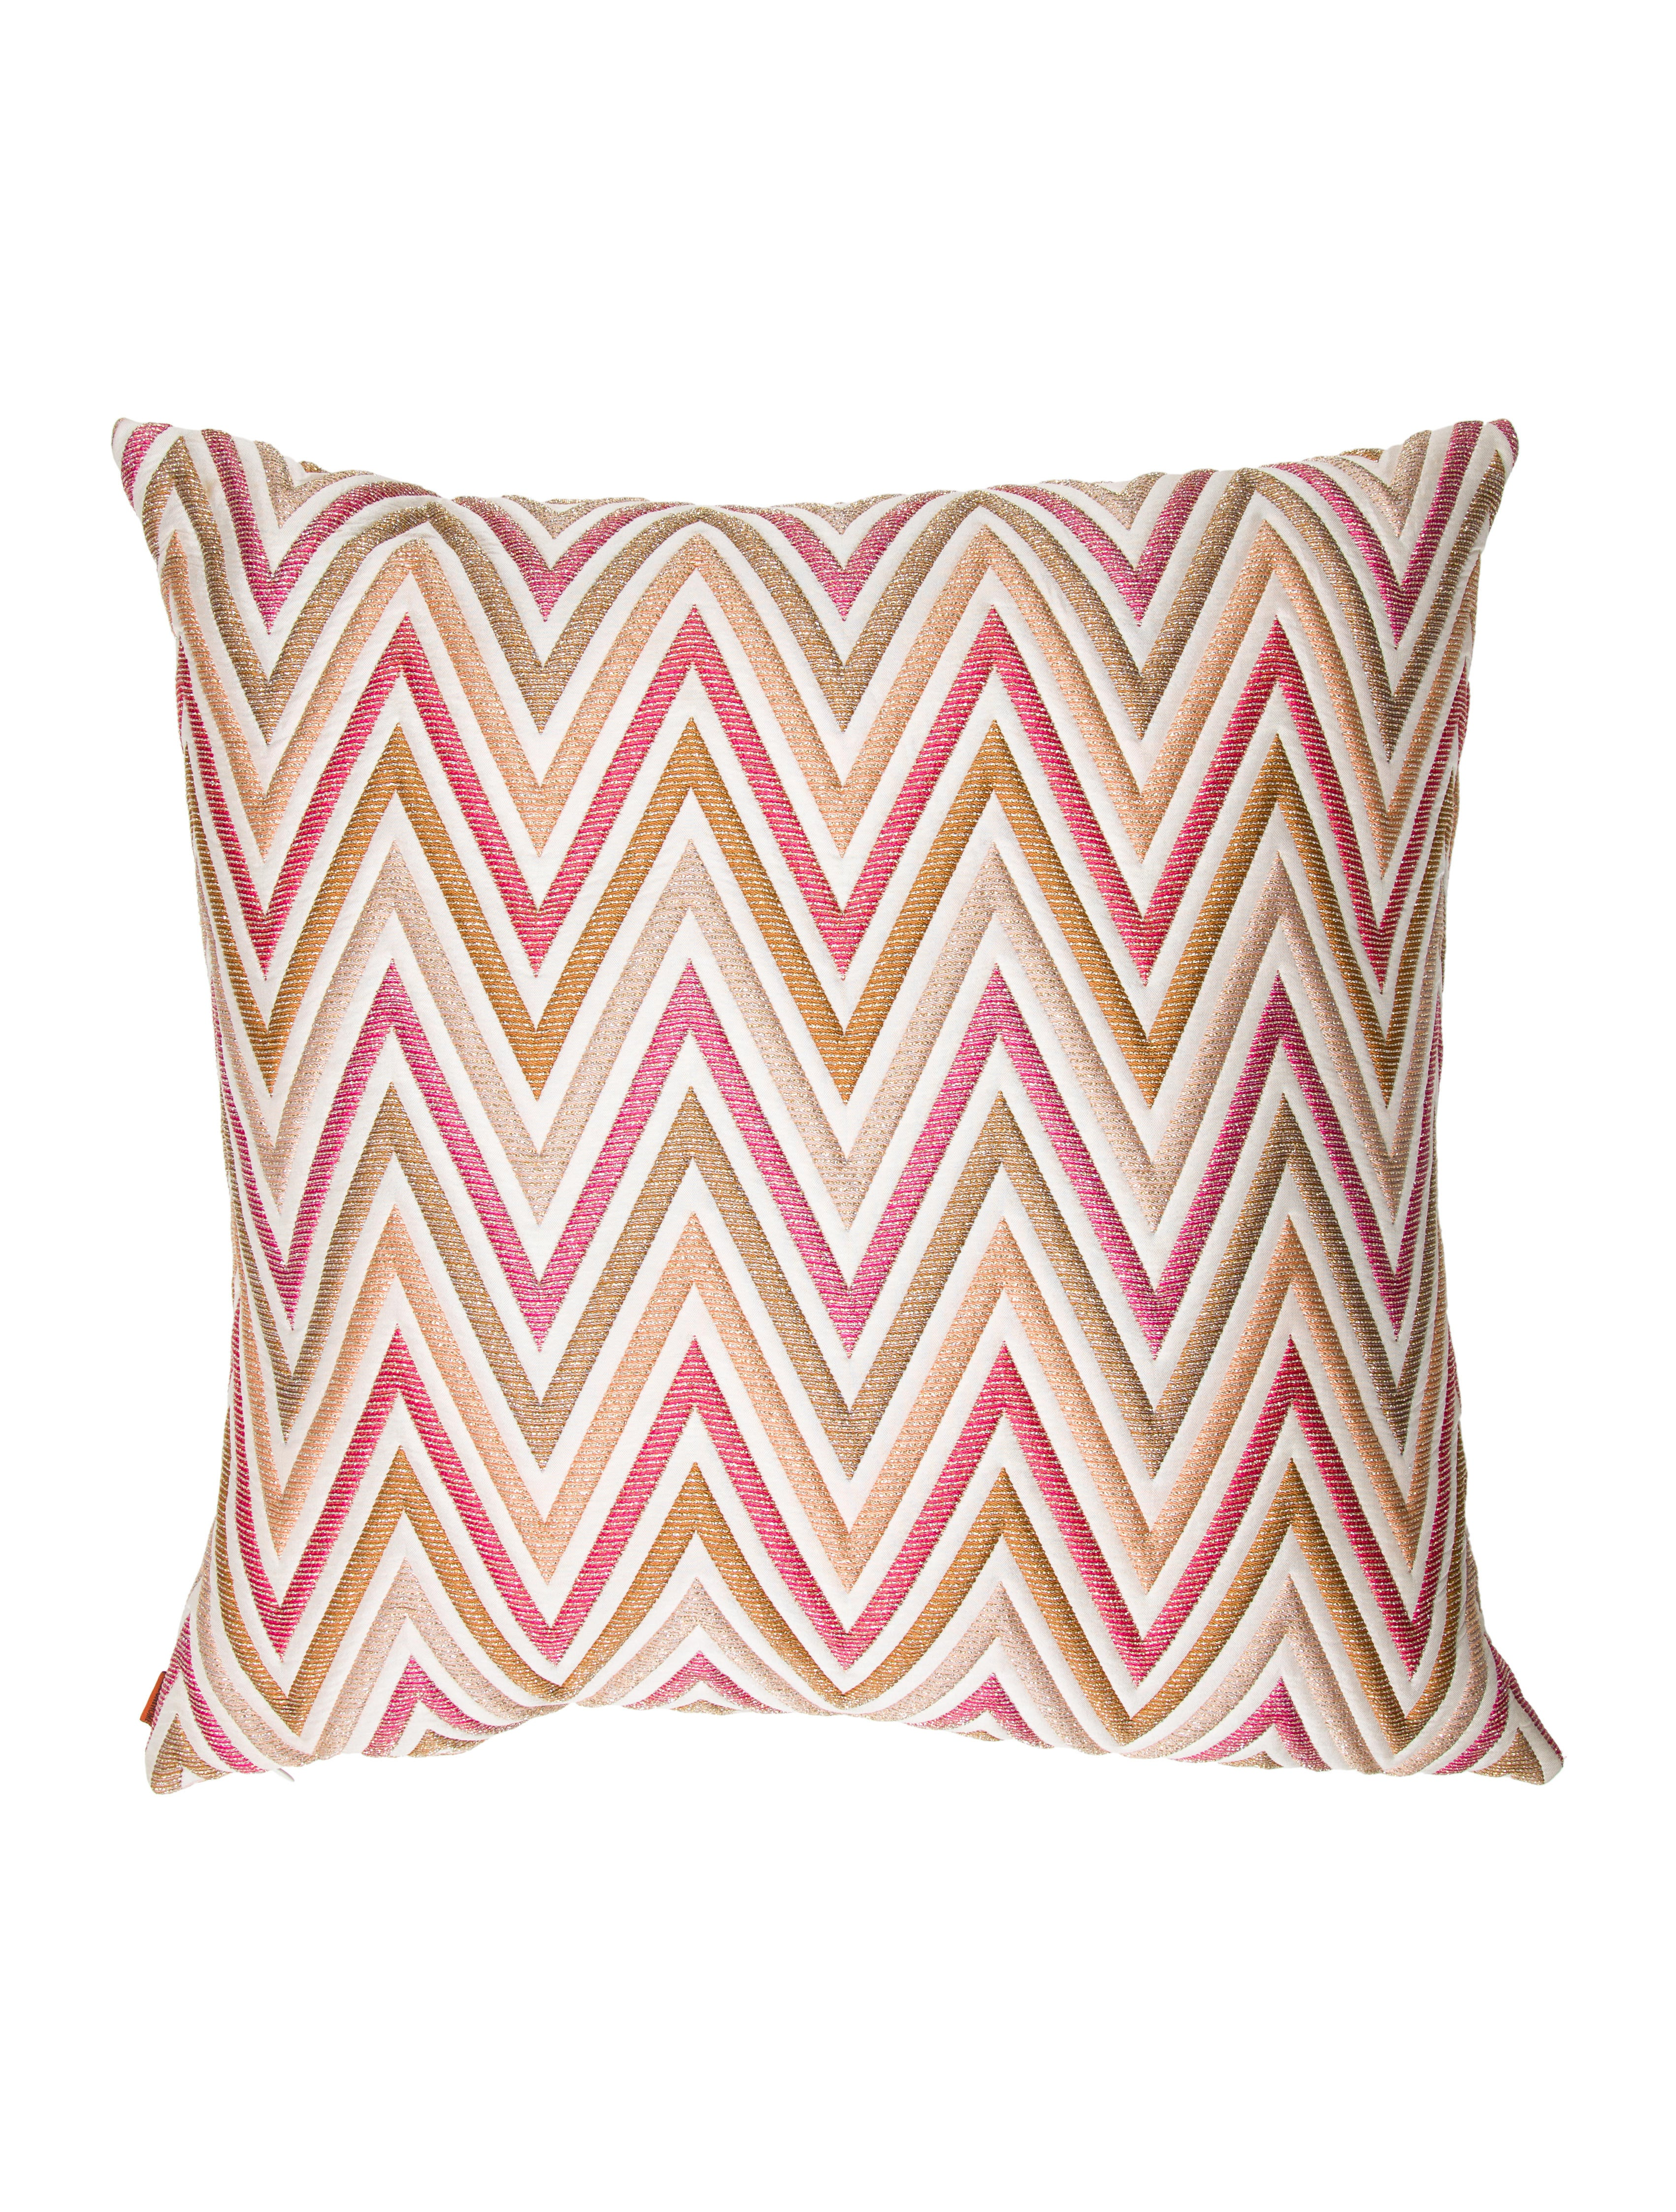 product sateen cotton cover pillows missoni pillow chairish